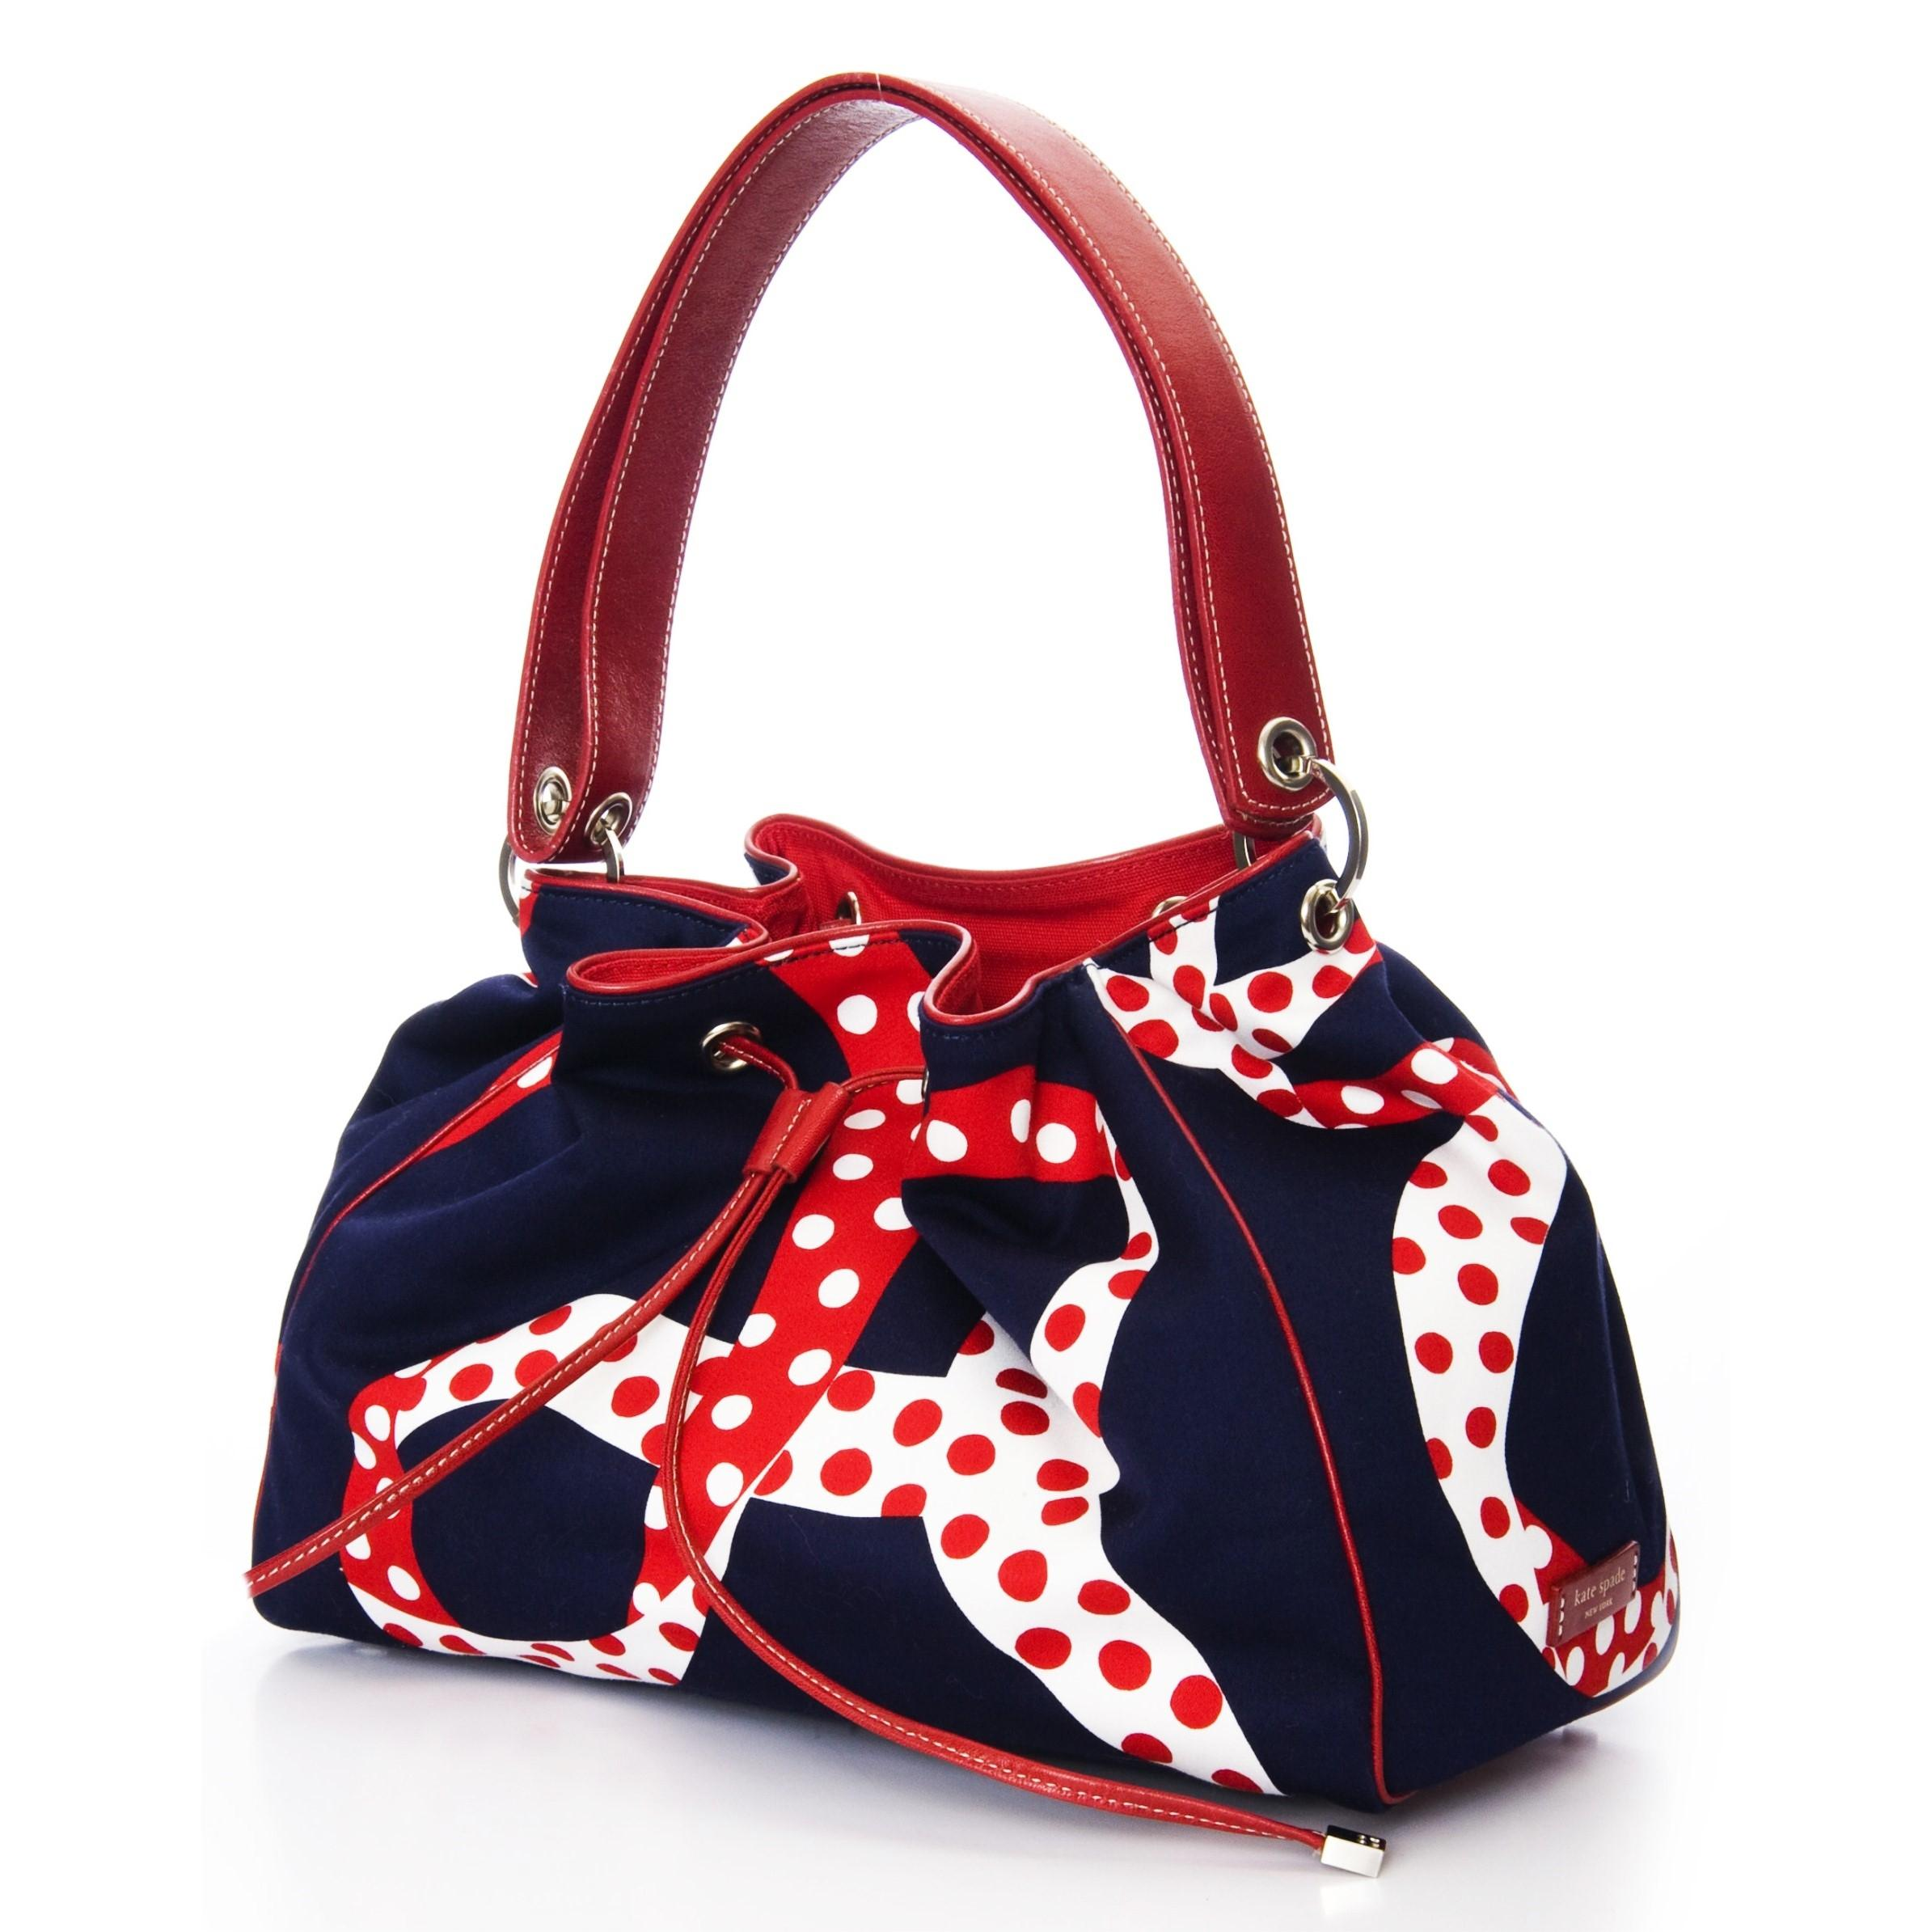 Kate Spade New York New Kate Spade Spring 2005 Collection 4th Of July Bag UsbC1iXn